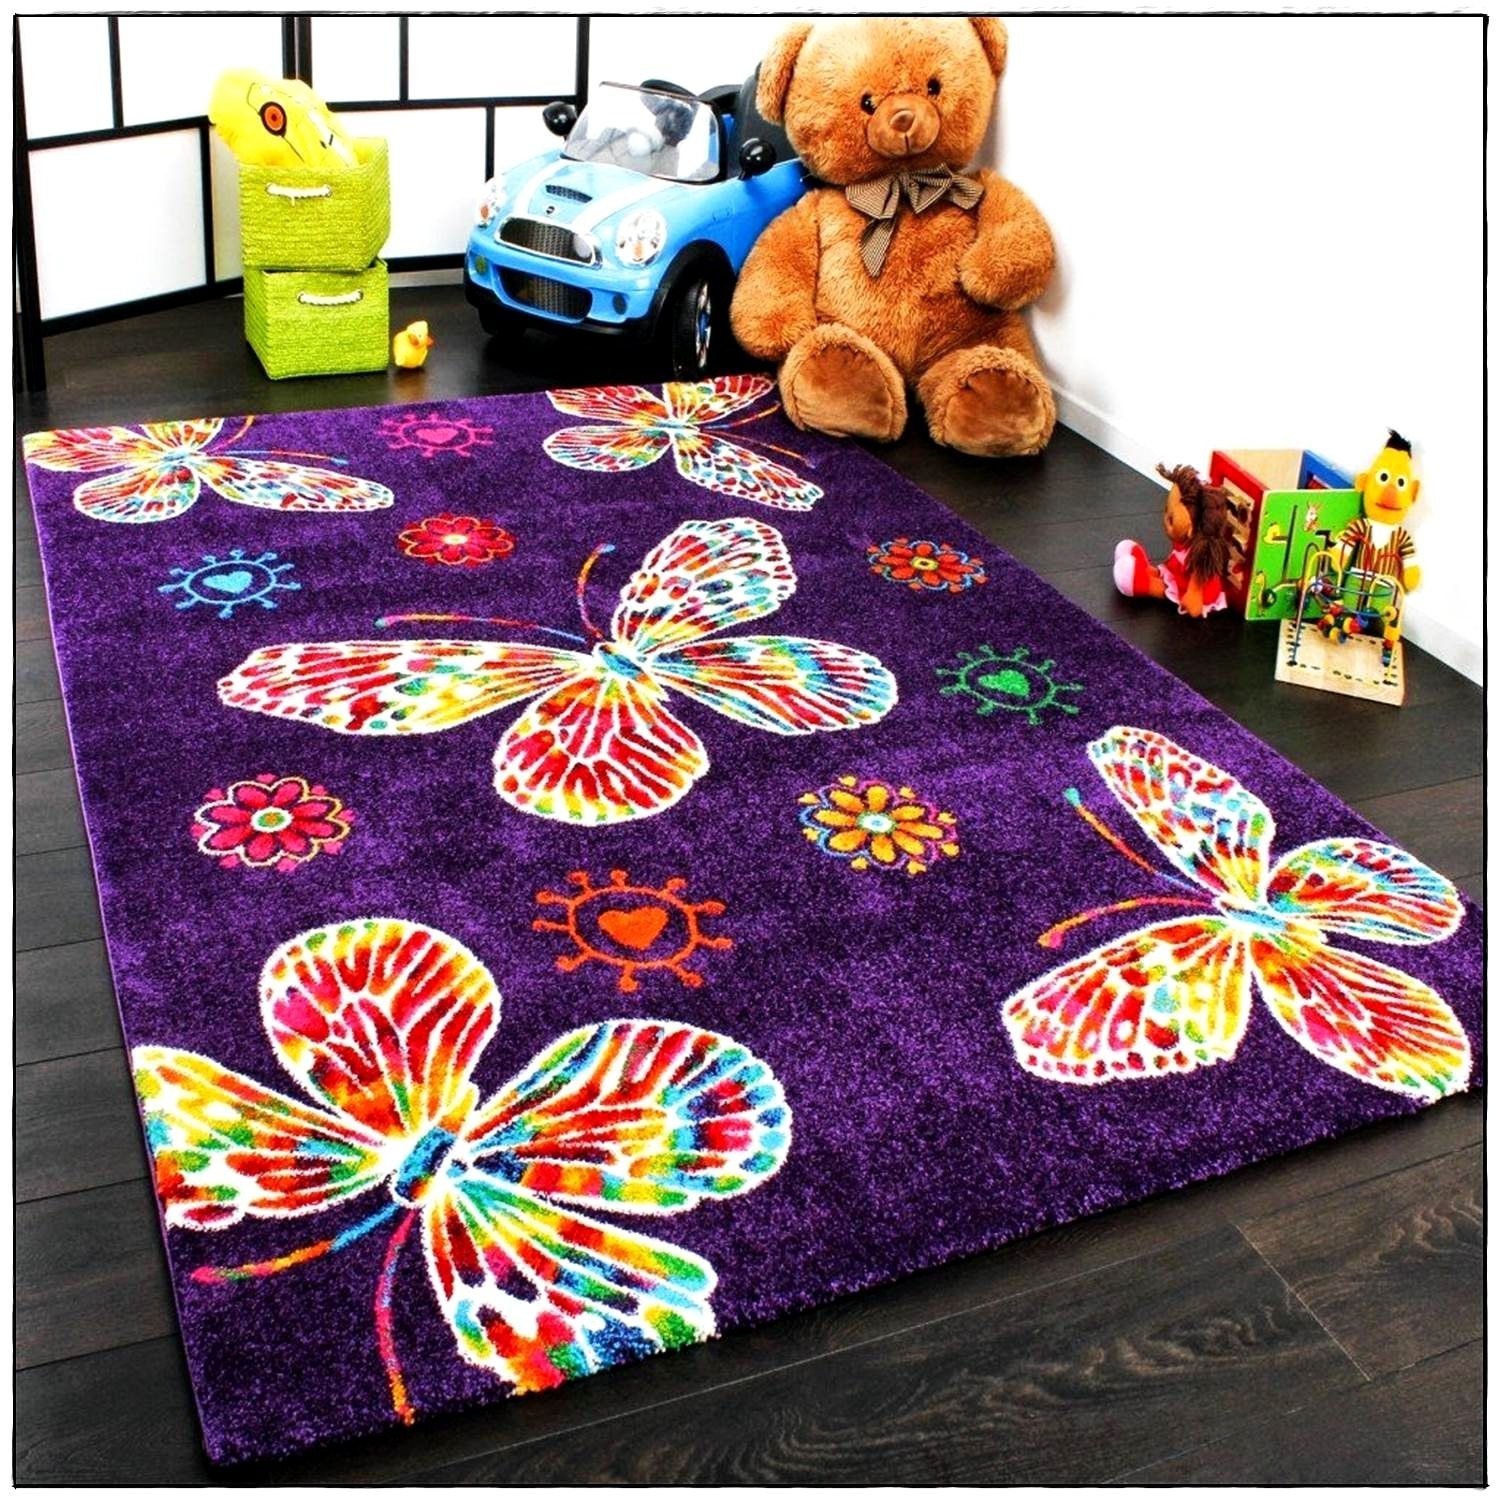 Casa Pura Tapis Luxe Image Les 25 Luxe Amazone Tapis Salon Collection